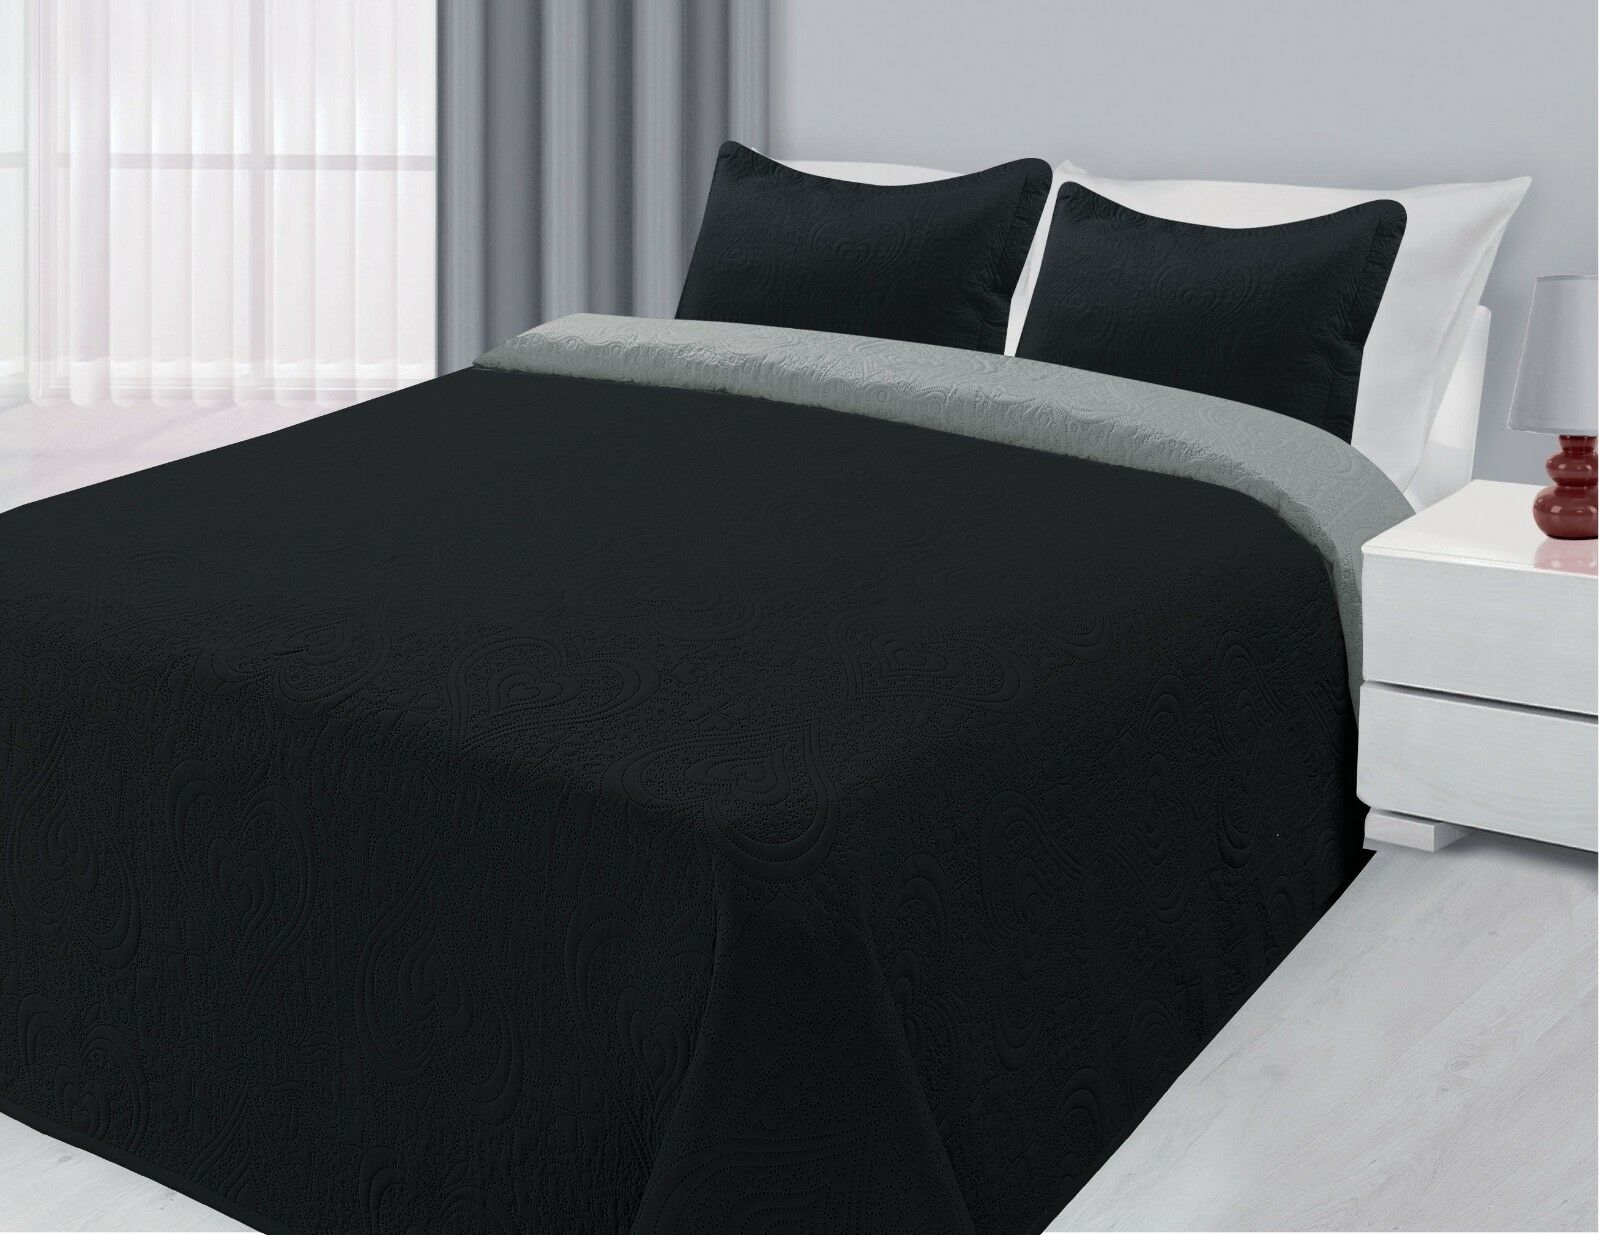 Black Silver Reversible Quilted Bedspread Embossed 3 Piece Coverlet Bed Set